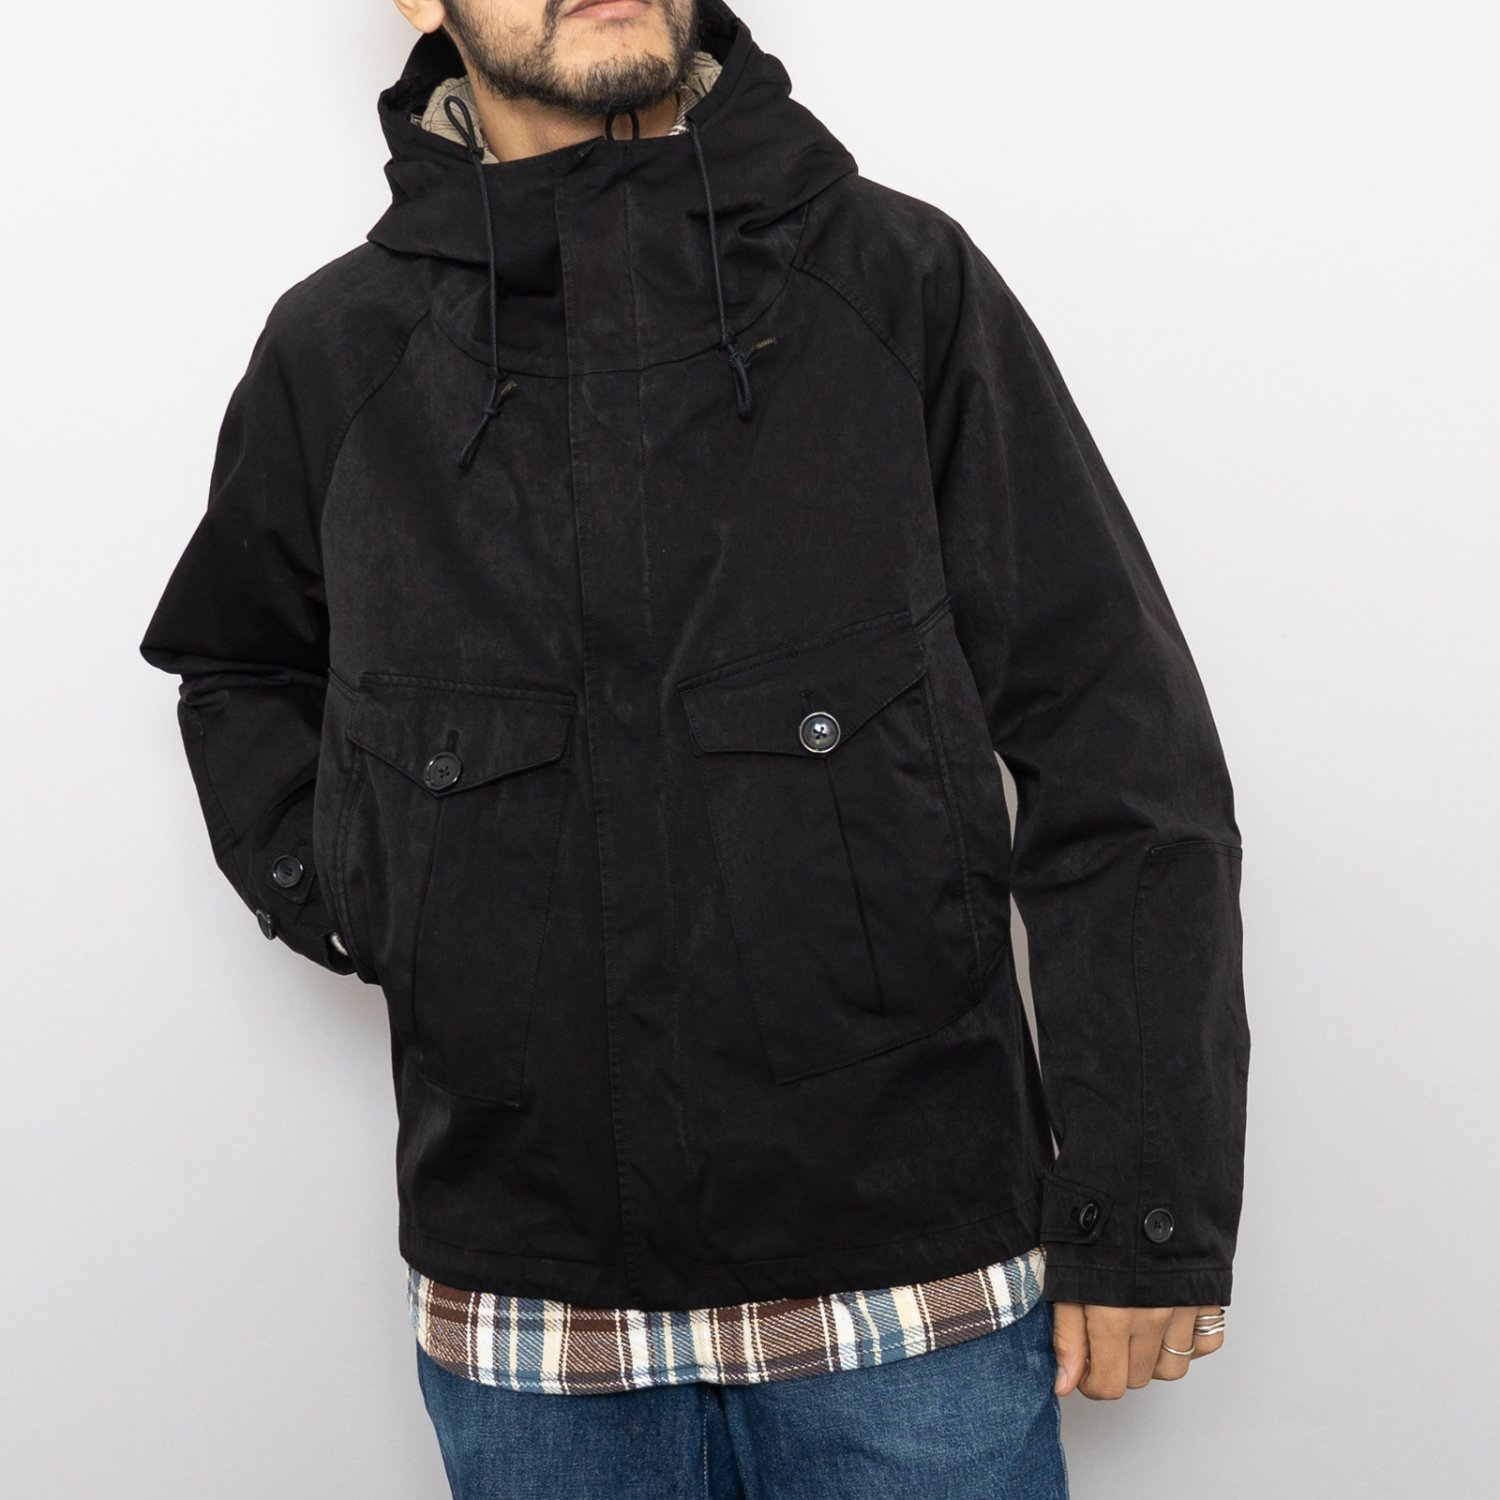 Ten-c * TEMPEST ANORAK * Black